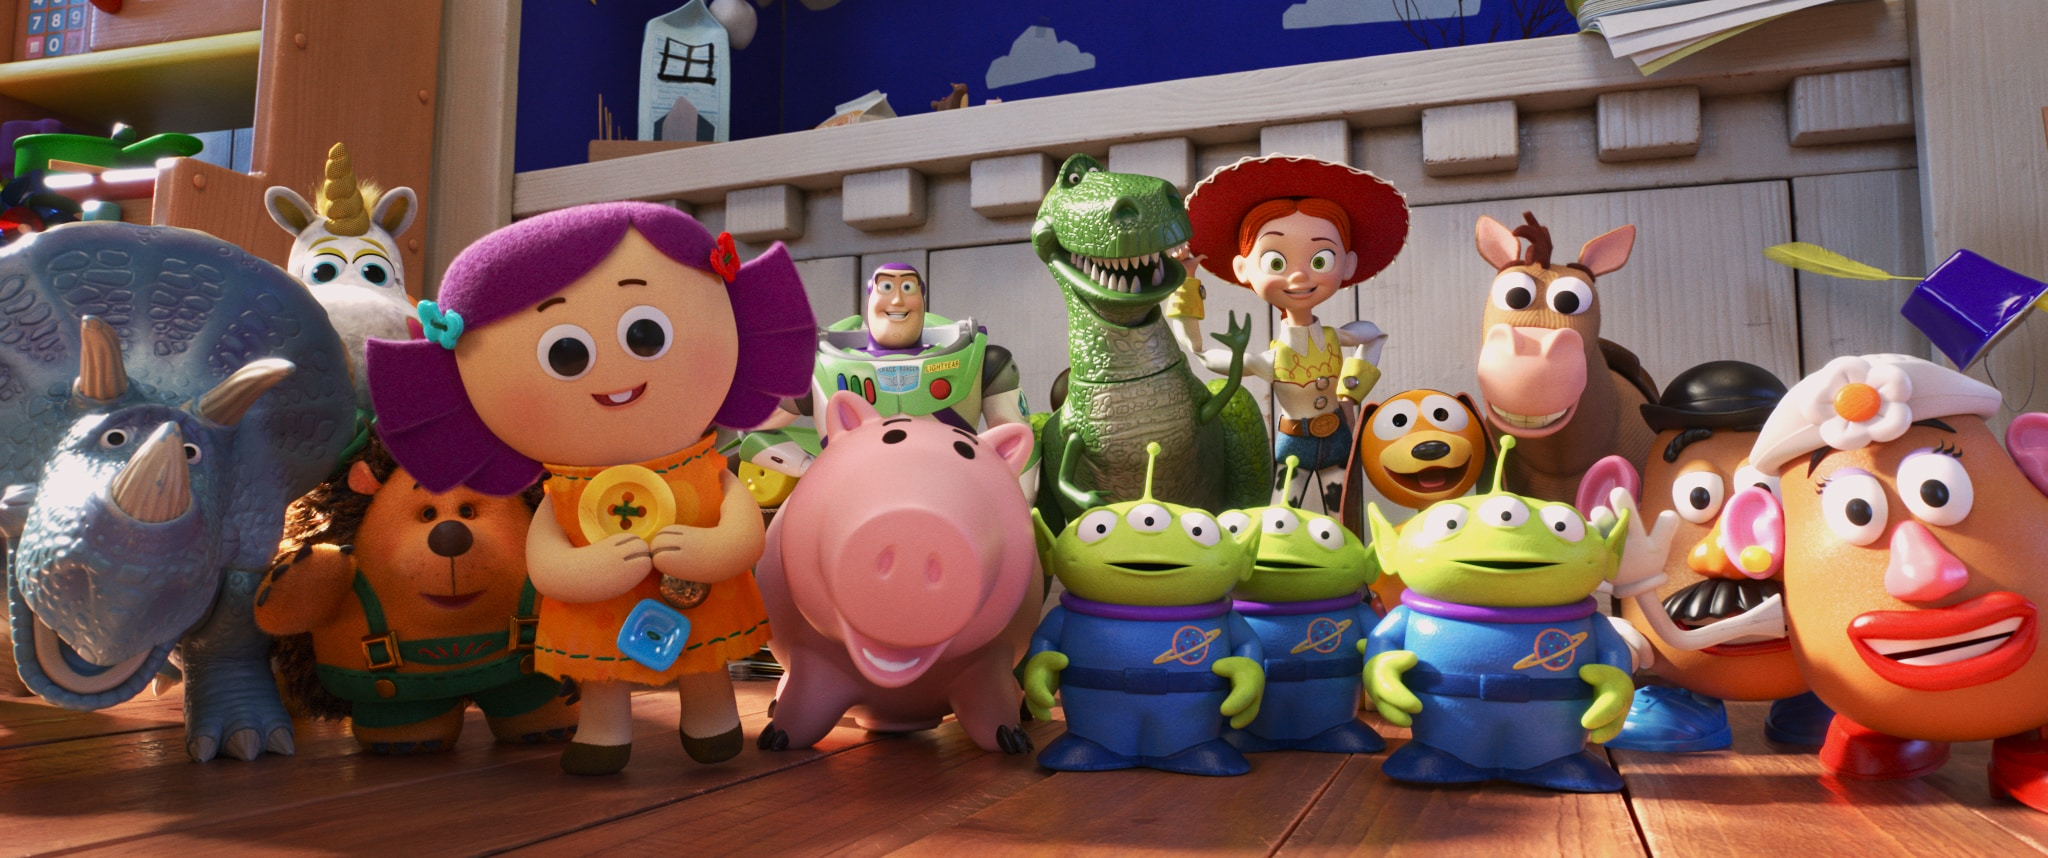 The Review Wire: Toy Story 4 Gang